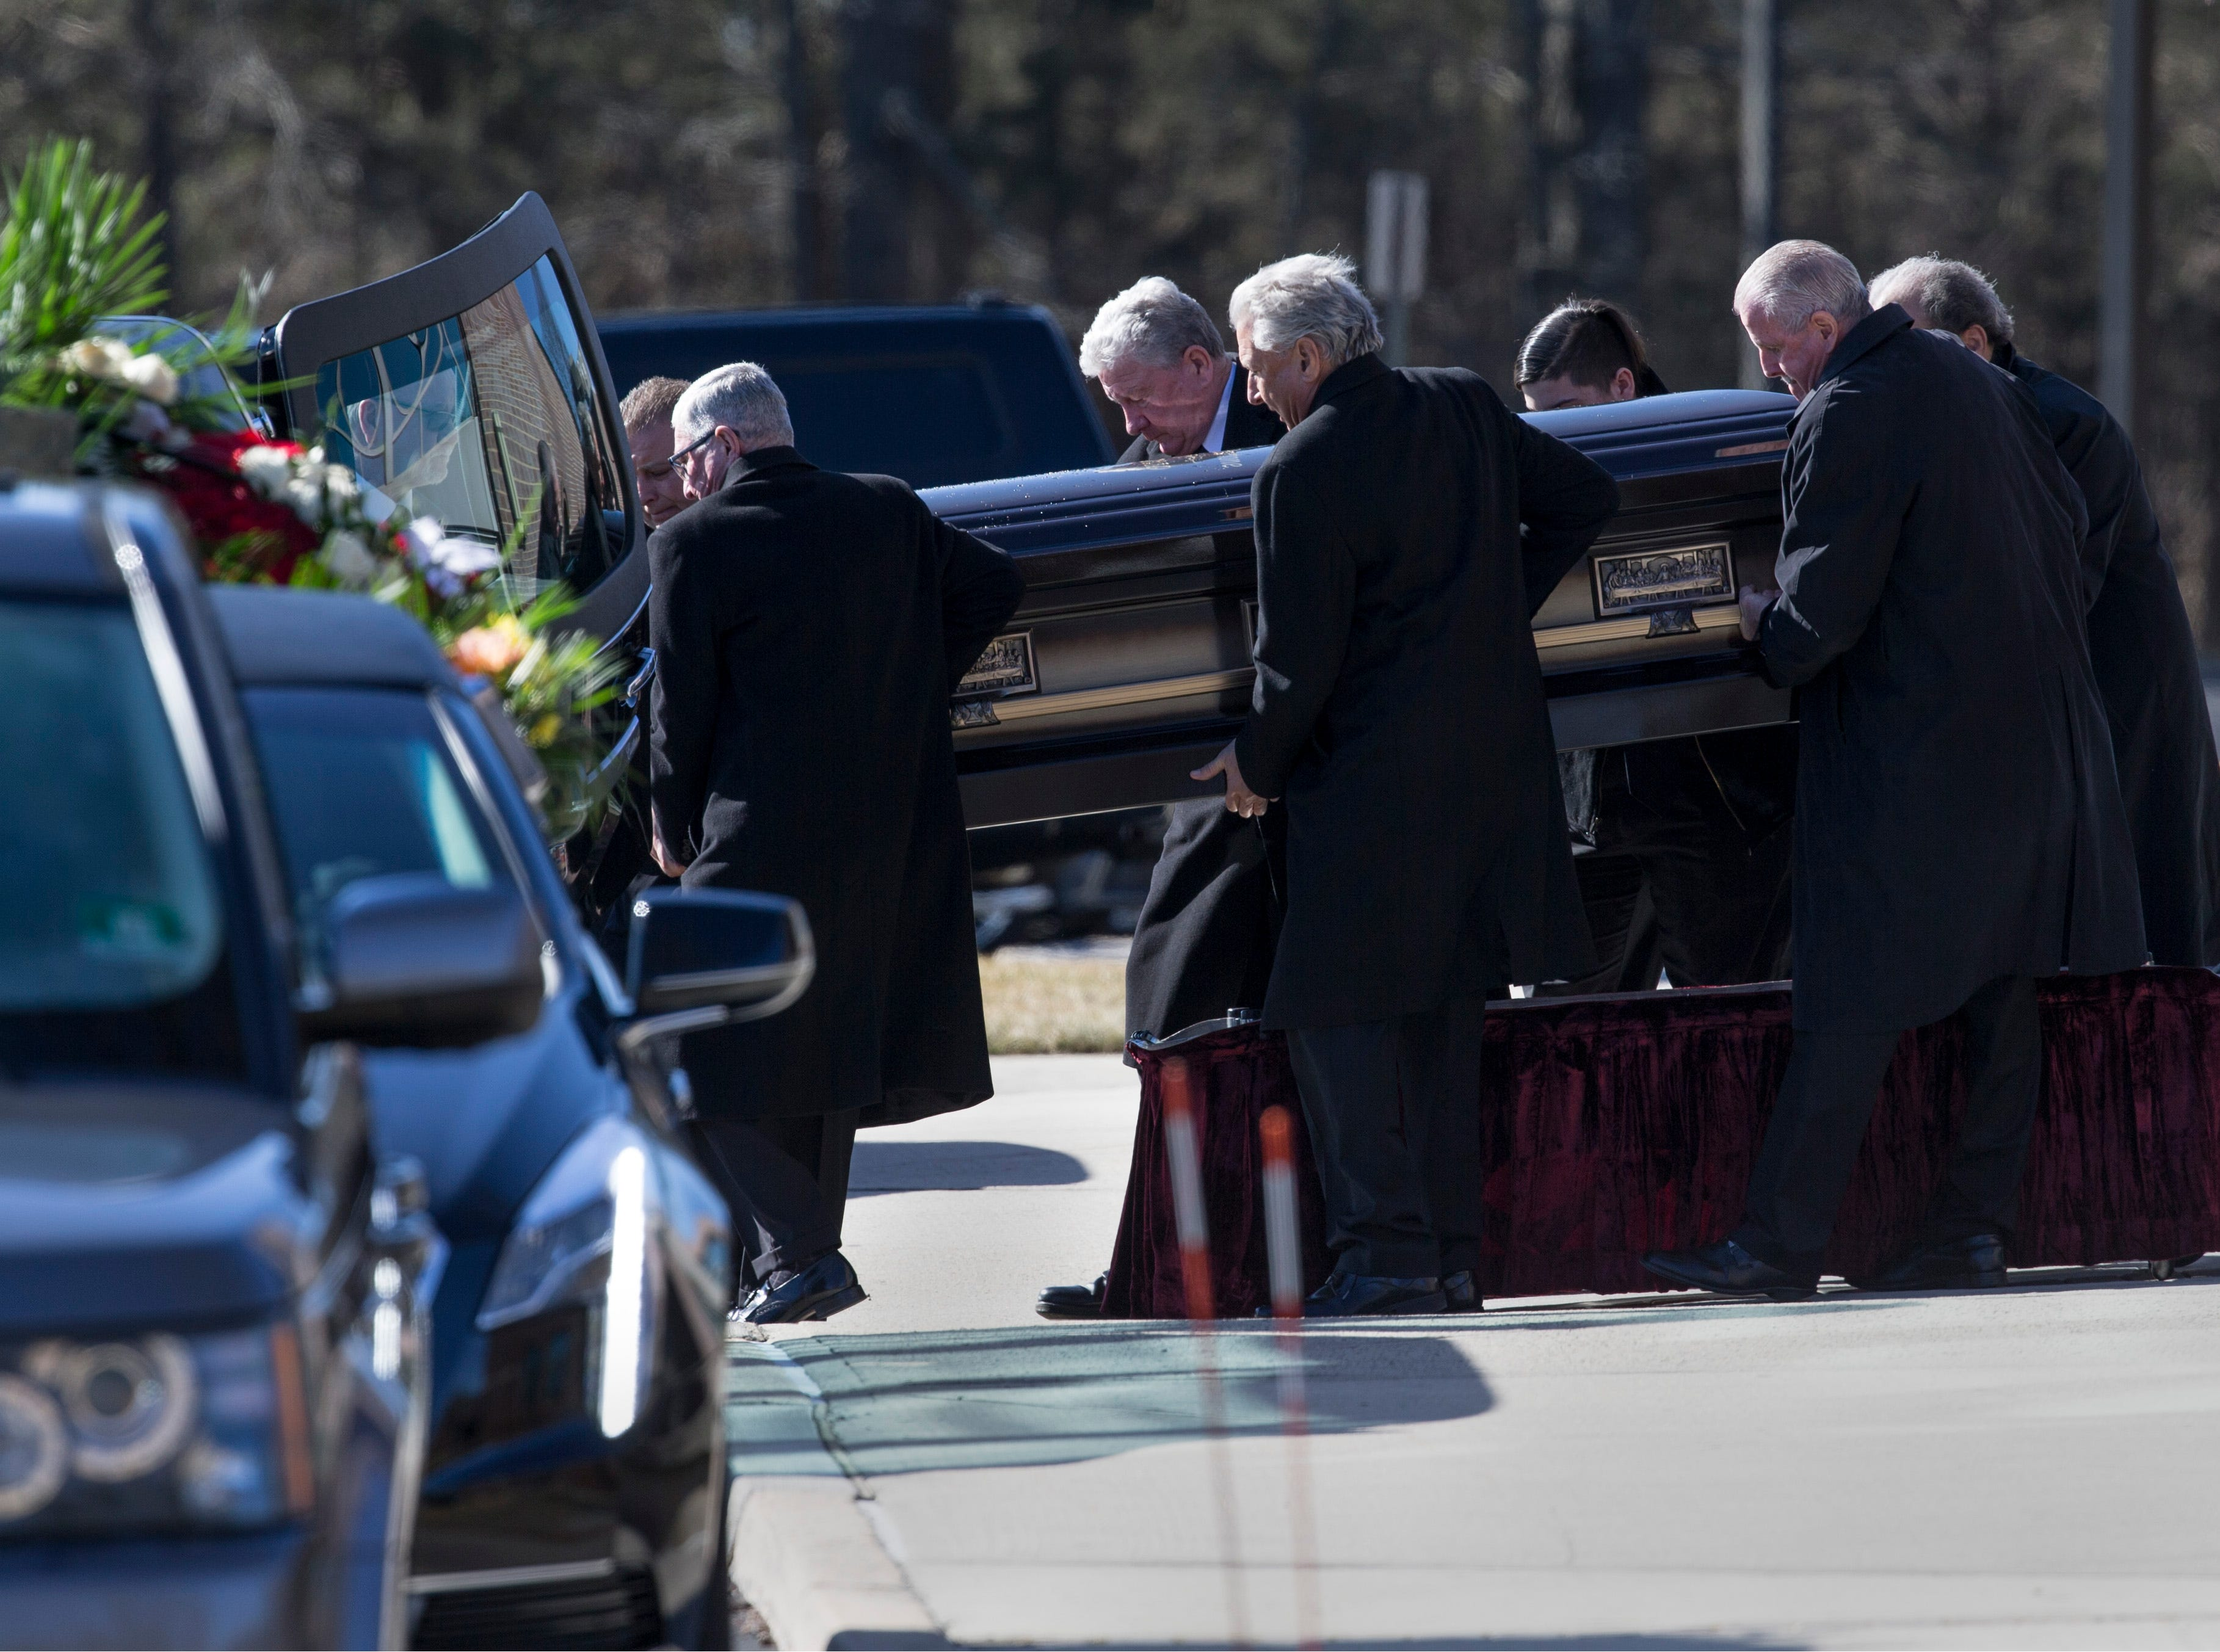 Pallbearers carry the casket of Denise Bartone outside the Co-Cathedral of St. Robert Bellarmine after the ceremony to celebrate her life took place.   Freehold Township, NJSaturday, February 9, 2019